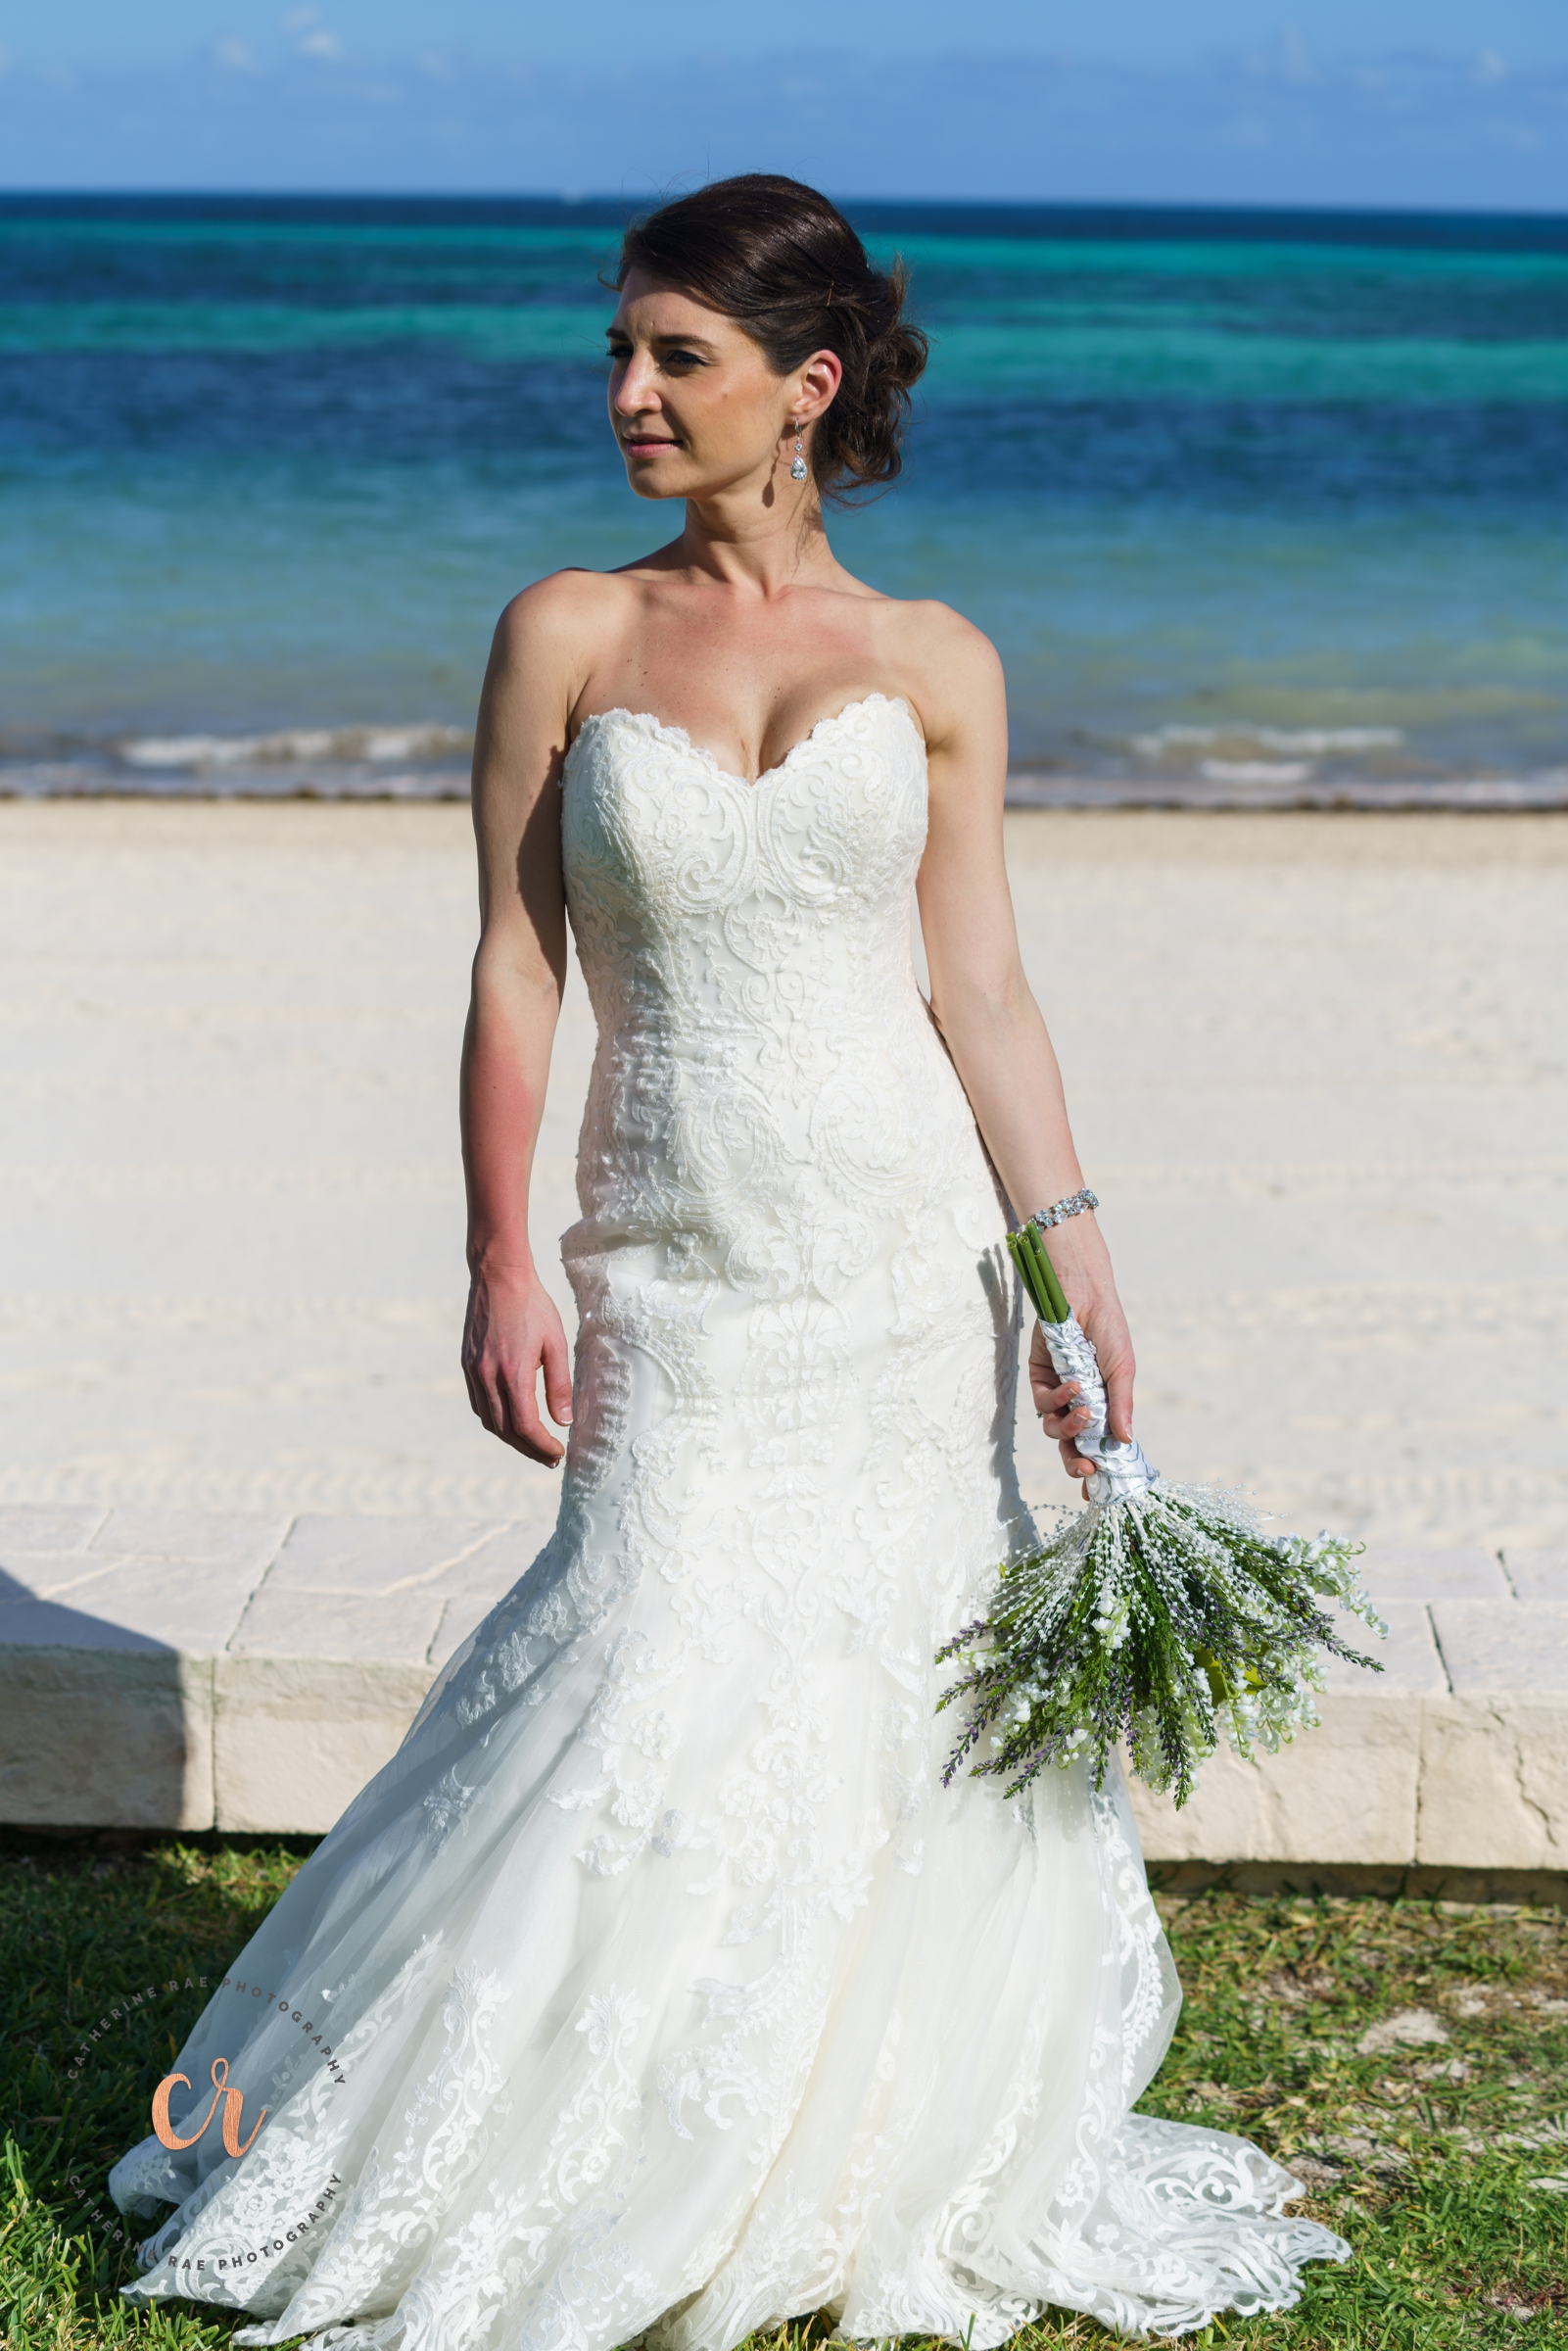 Cancun_Wedding_CatherineRaePhotography